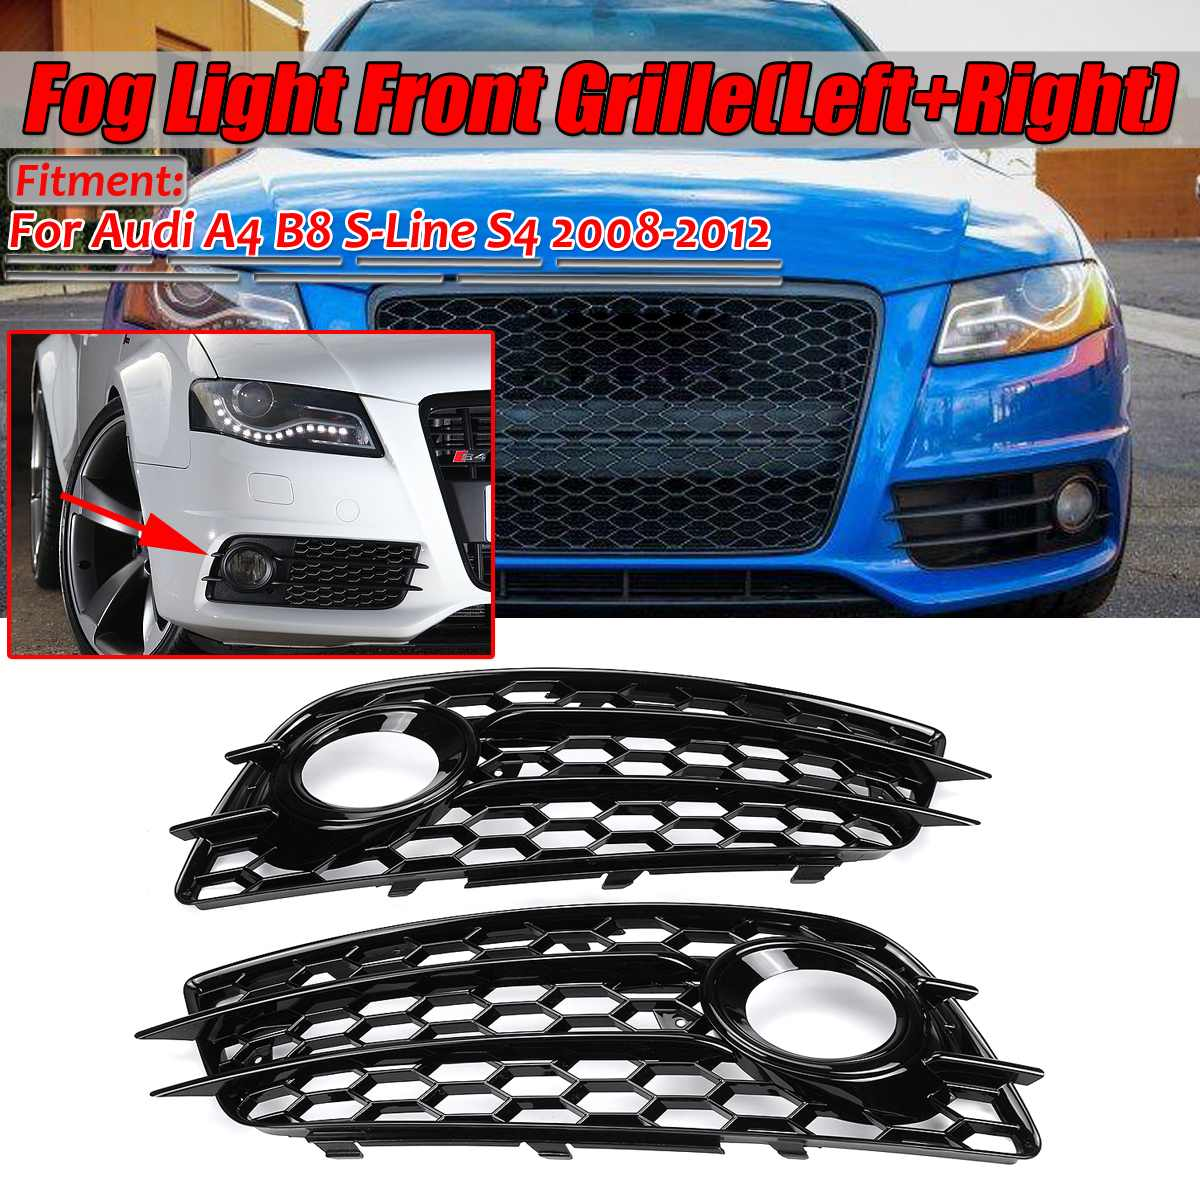 A4 B8 Black Car Fog Light Grille Lamp Cover HONEYCOMB HEX Front Grille Grill For Audi A4 B8 S-Line S4 2008 2009 2010 2011 2012